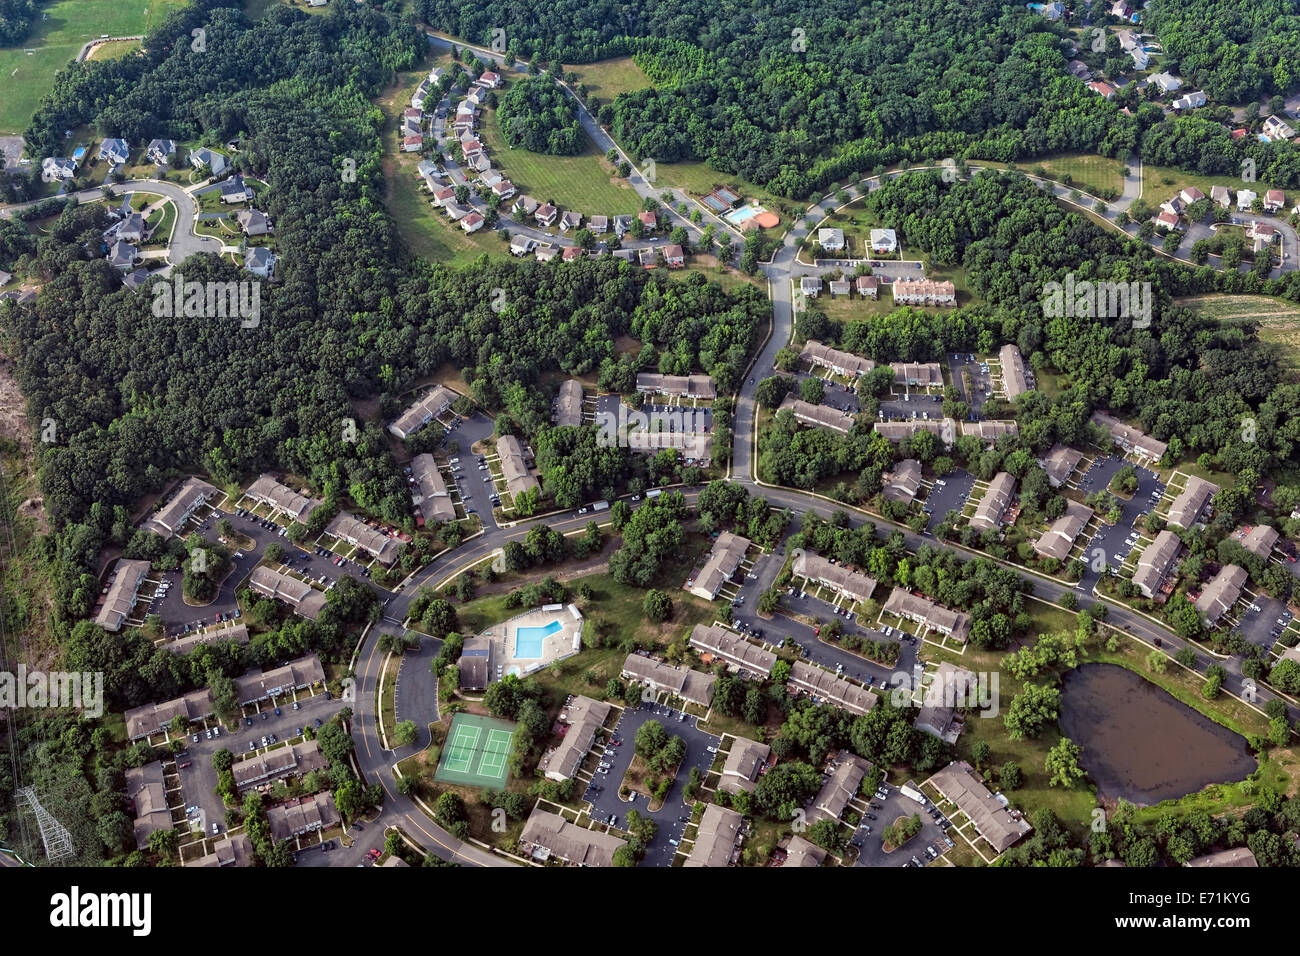 Aerial View of New Jersey Housing Tracts, Monmouth County - Stock Image